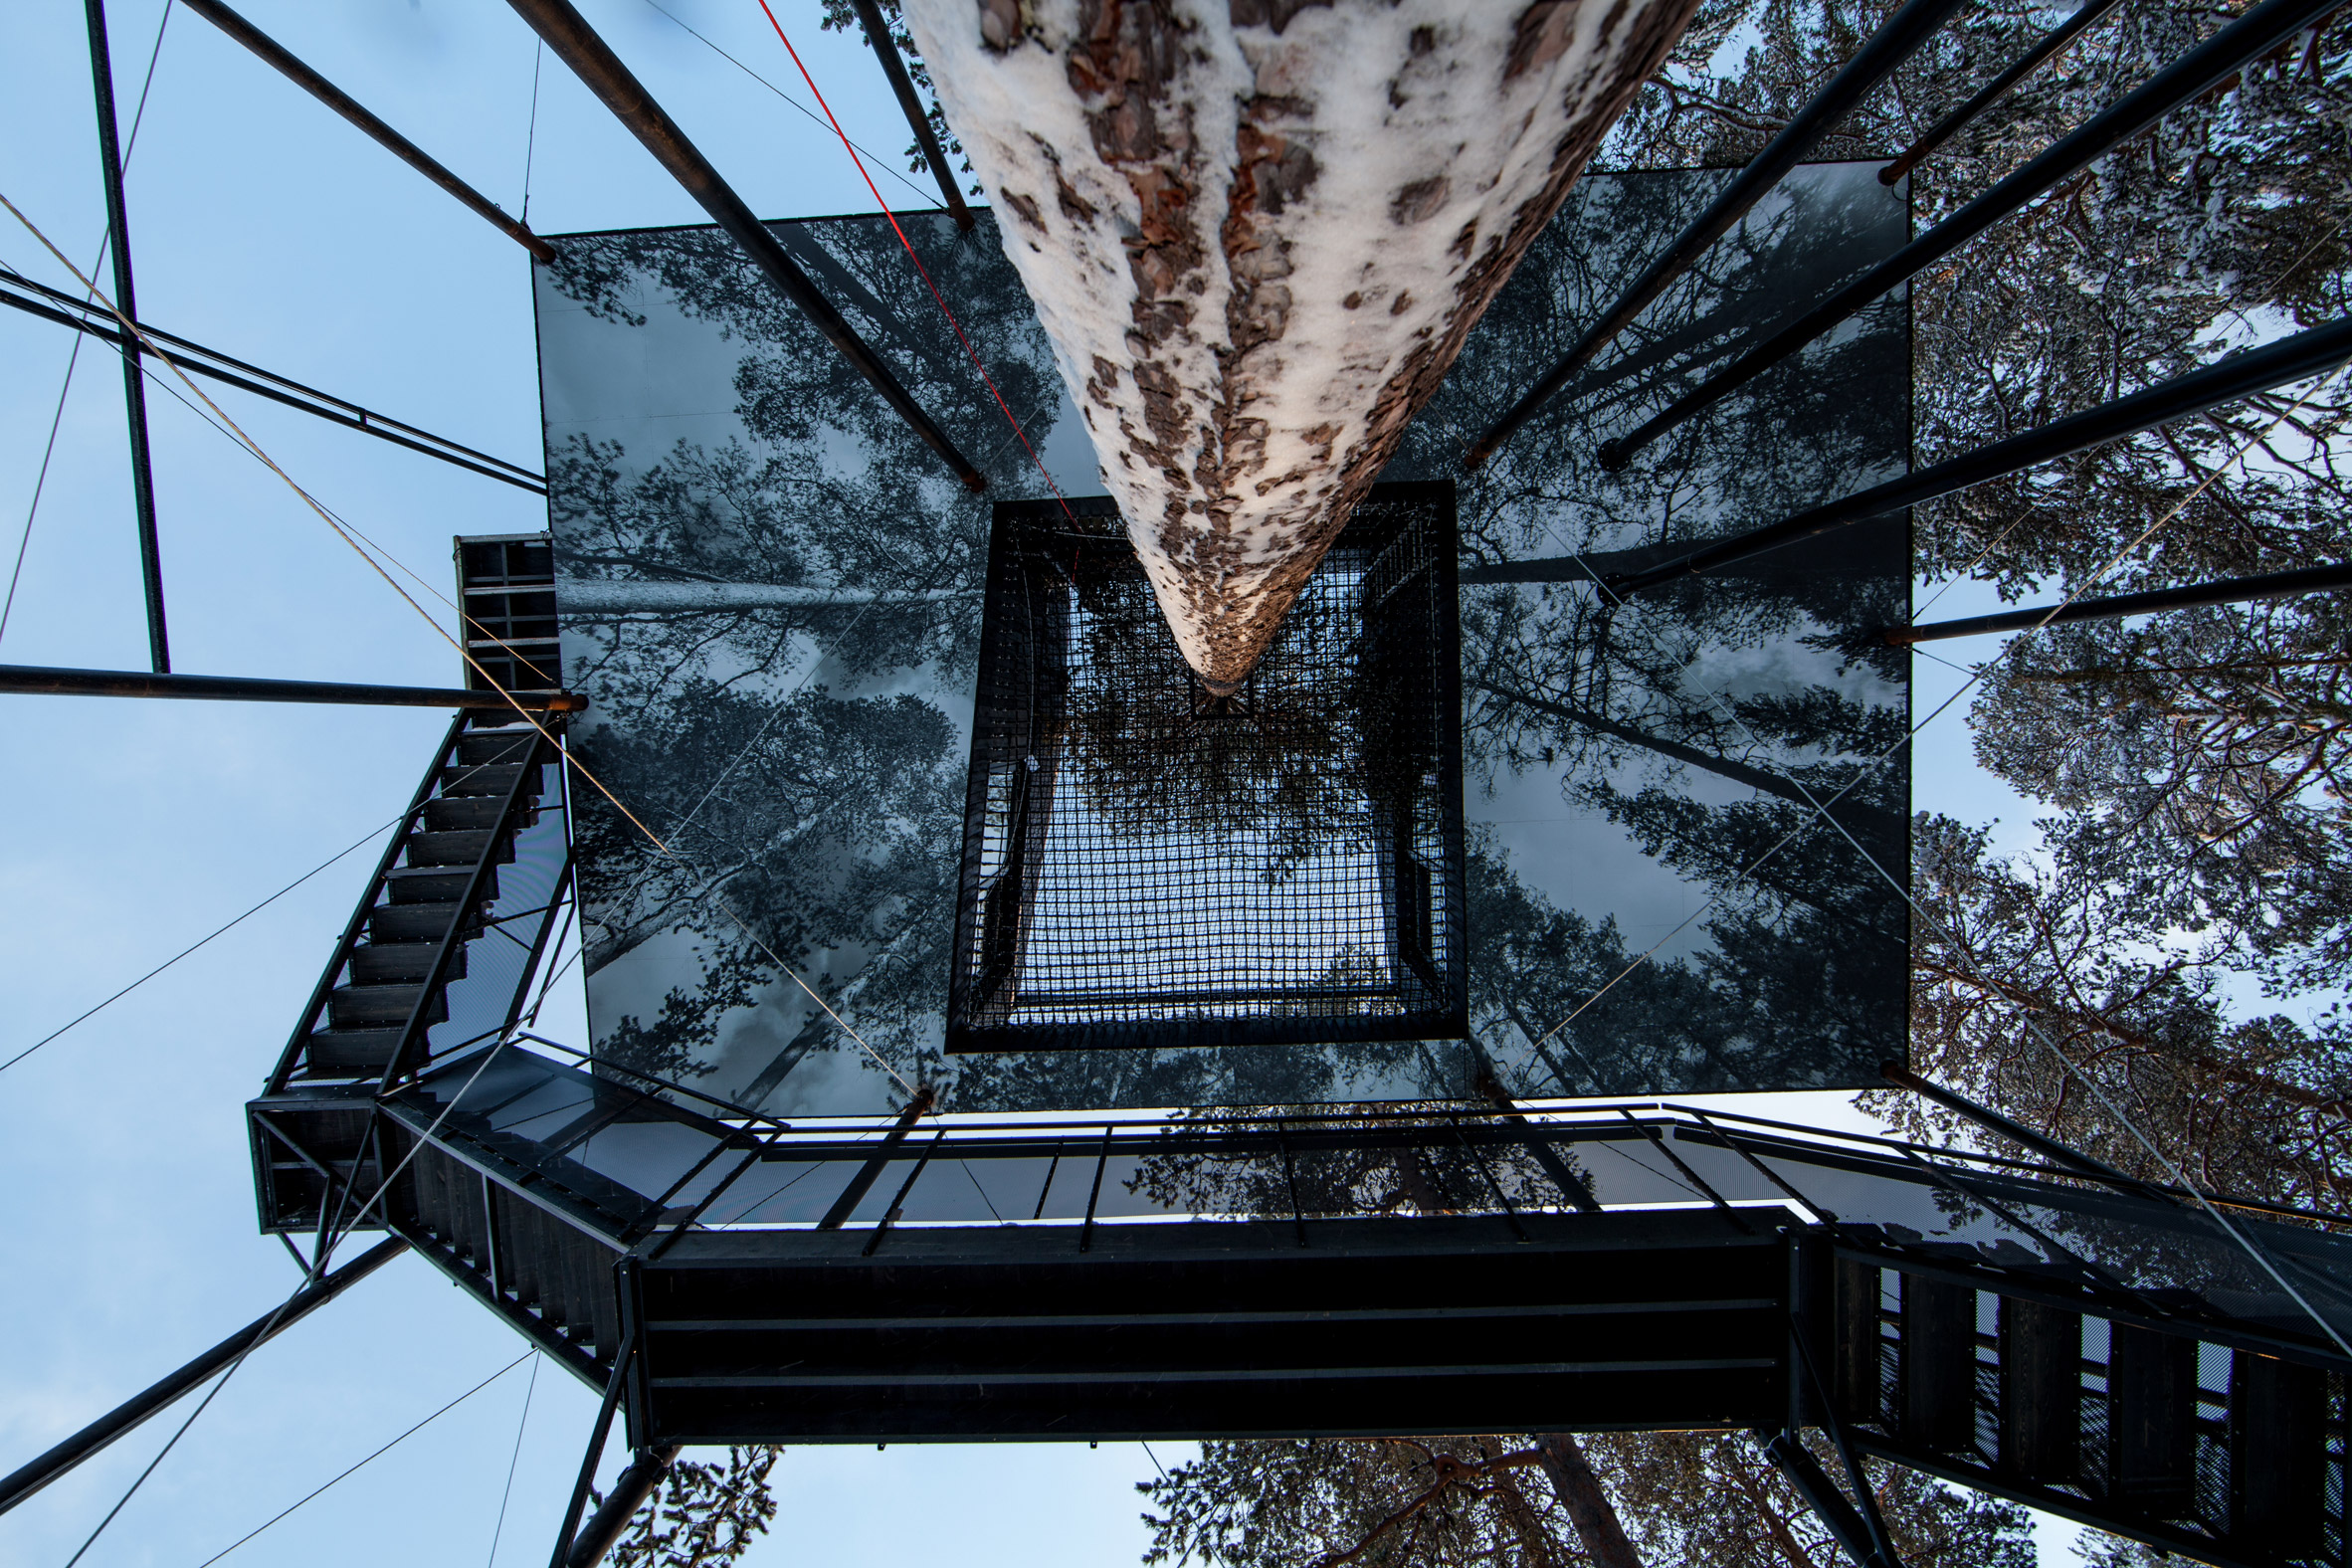 the-7th-room-tree-hotel-snohetta-sweden-architecture_dezeen_2364_col_11.jpg